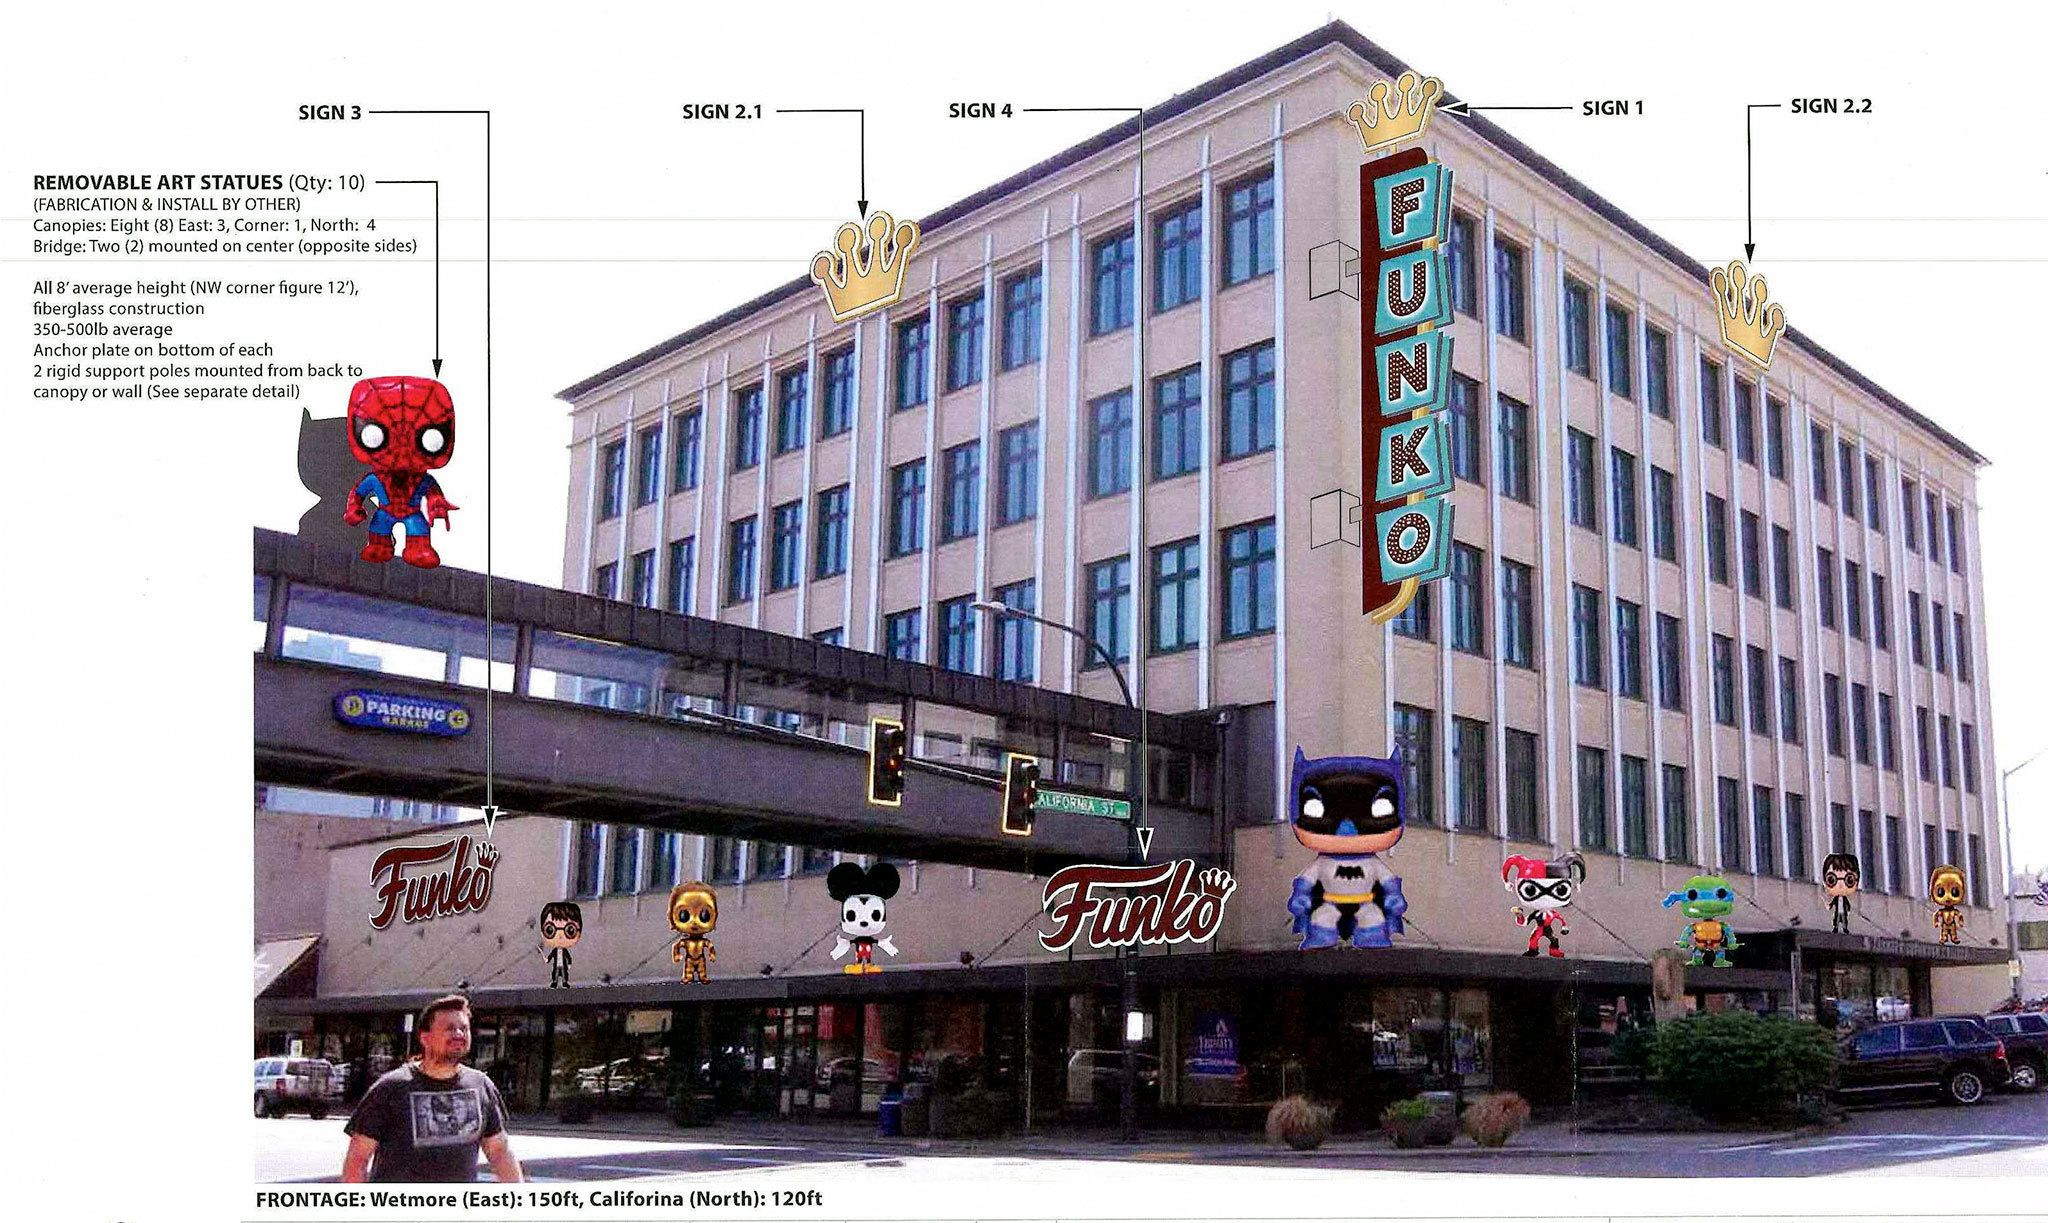 Funko, a maker of popular culture toys and merchandise, is planning to move into downtown Everett.